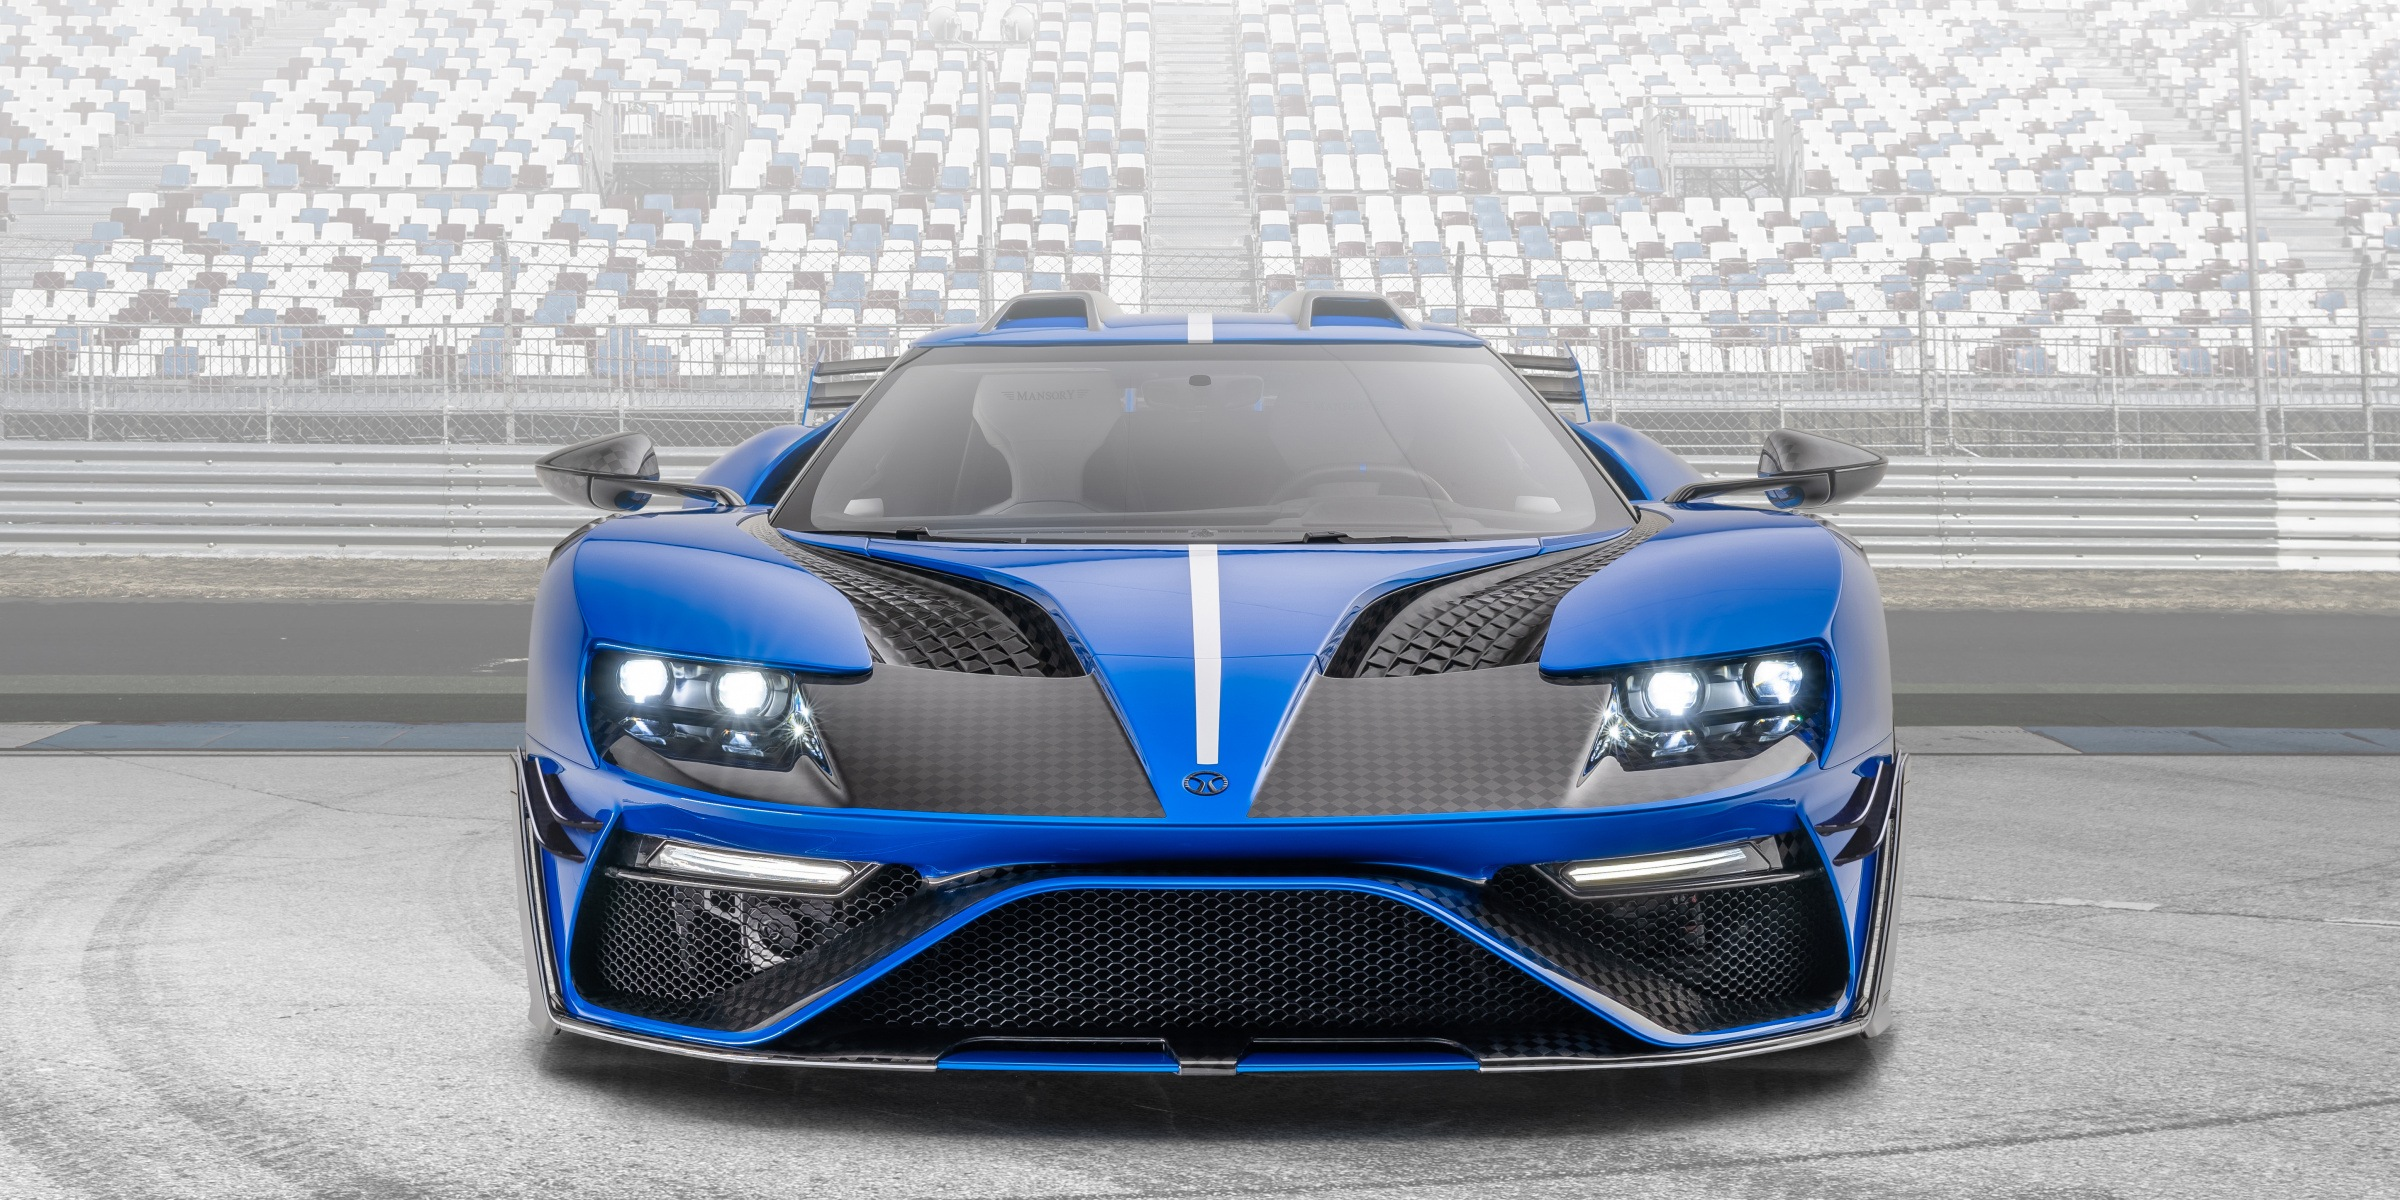 MANSORY | more than tradition, more than racing